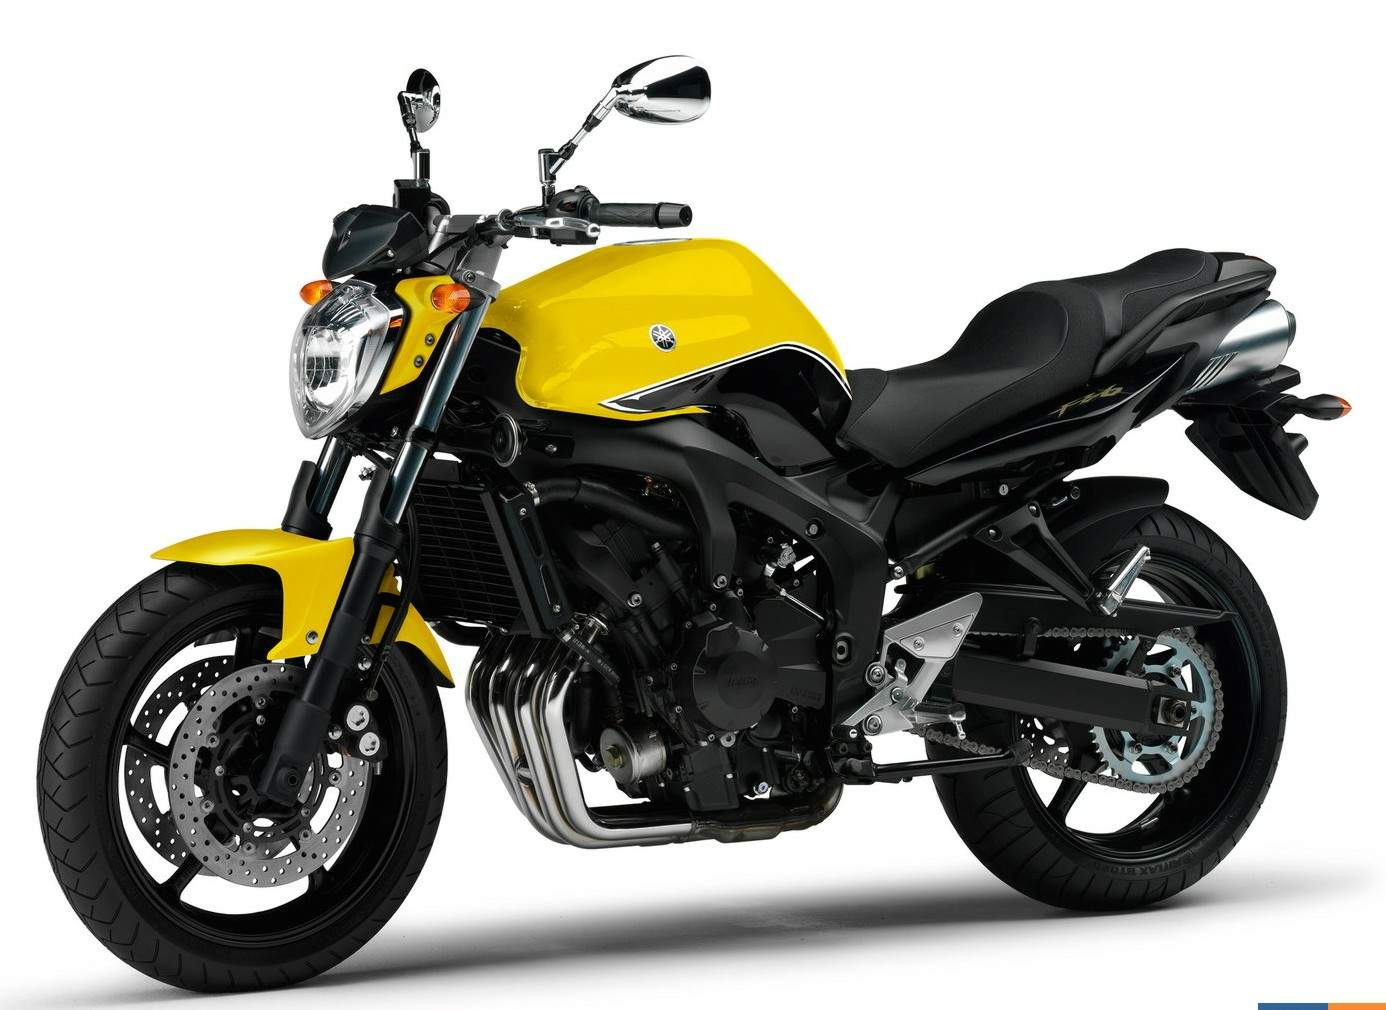 Yamaha FZ 6N S2 ABS 2009 images #91883